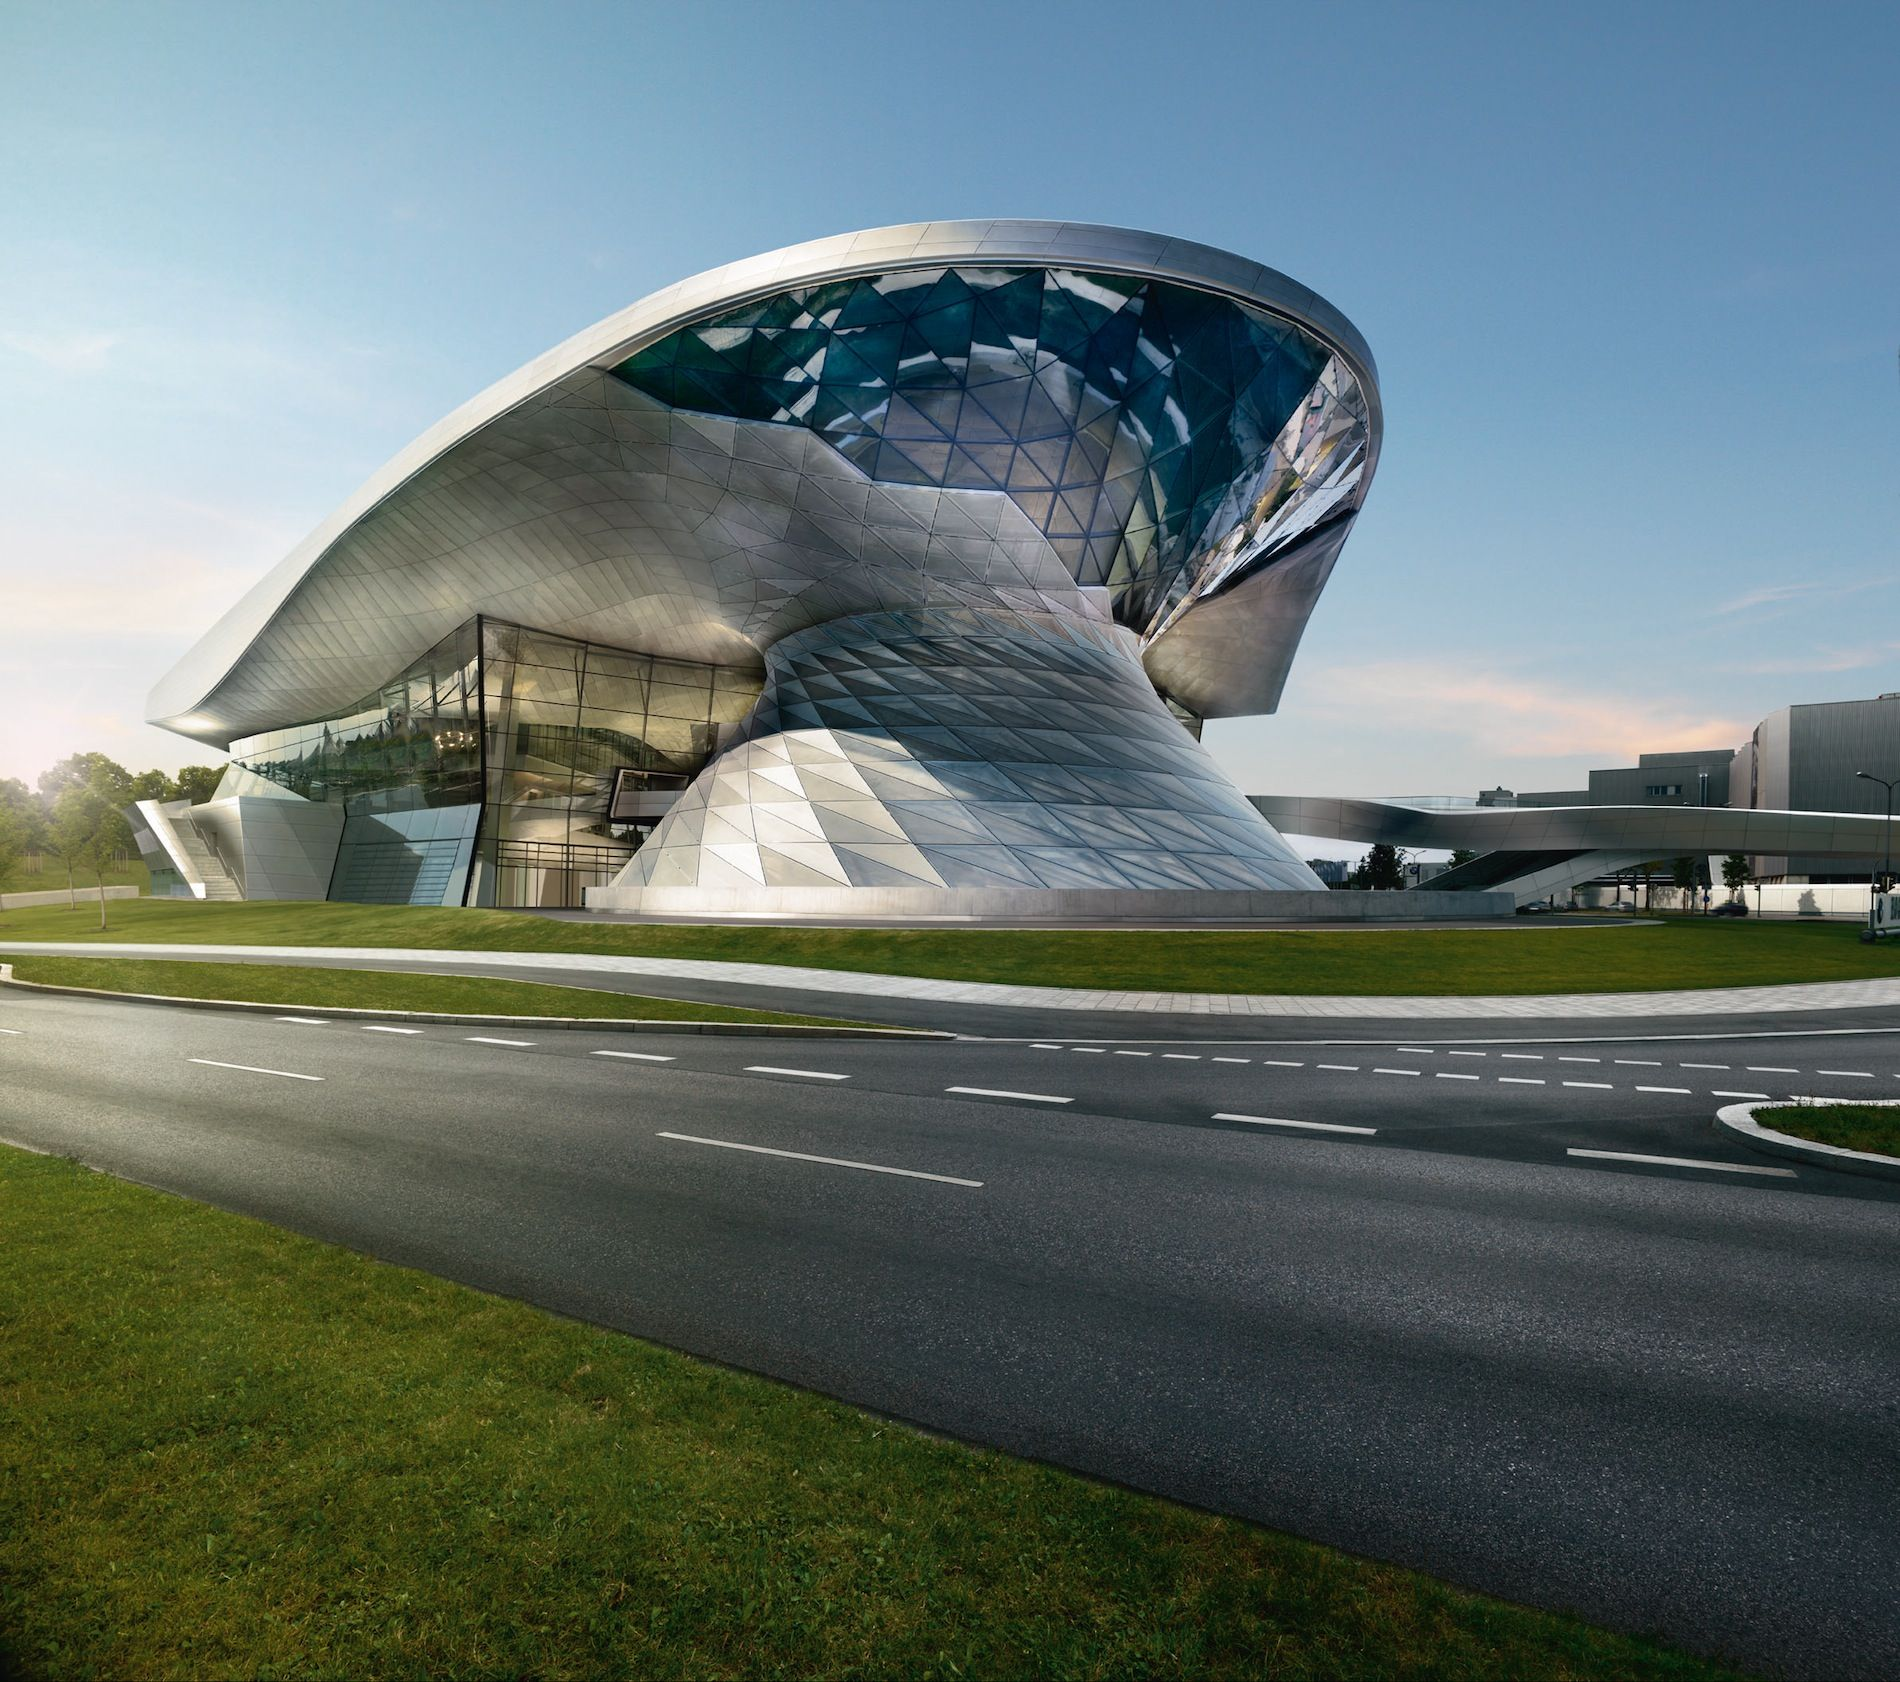 Bmwpany In Germany: The Complete BMW Welt Experience: BMW Welt, BMW Museum And